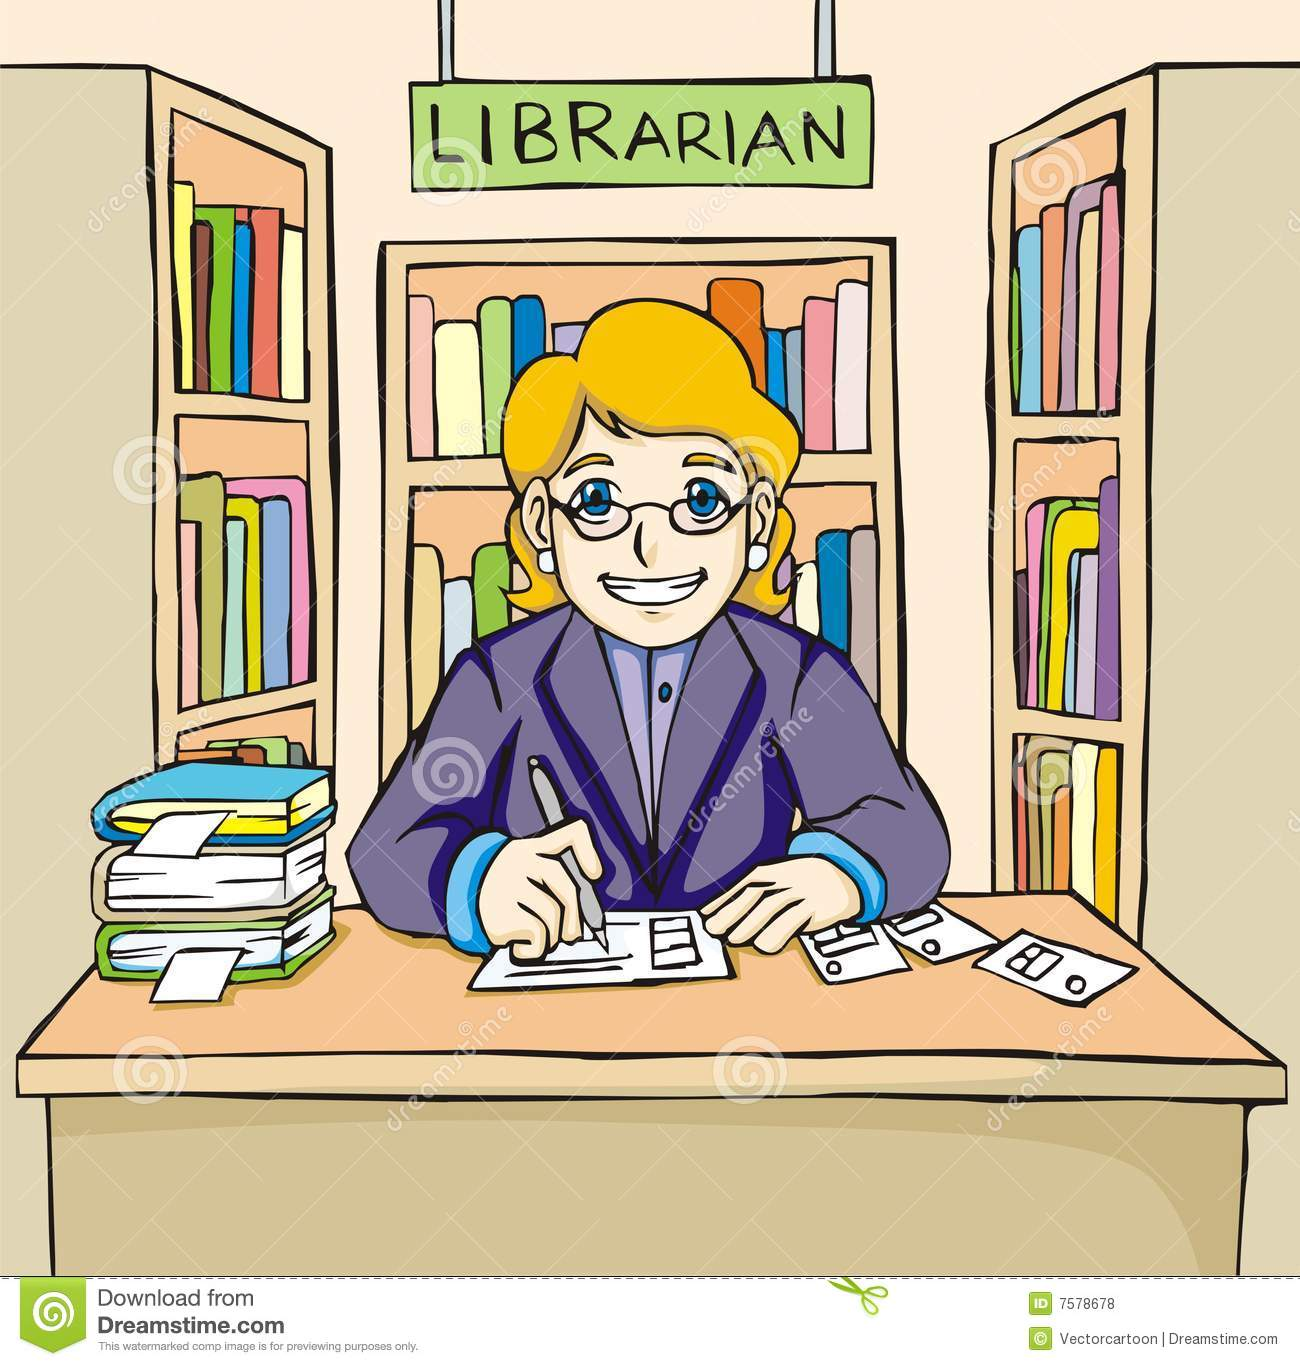 Todd Clipart 20 Fee Cliparts Download Imagenes: Librarian Clipart 20 Free Cliparts